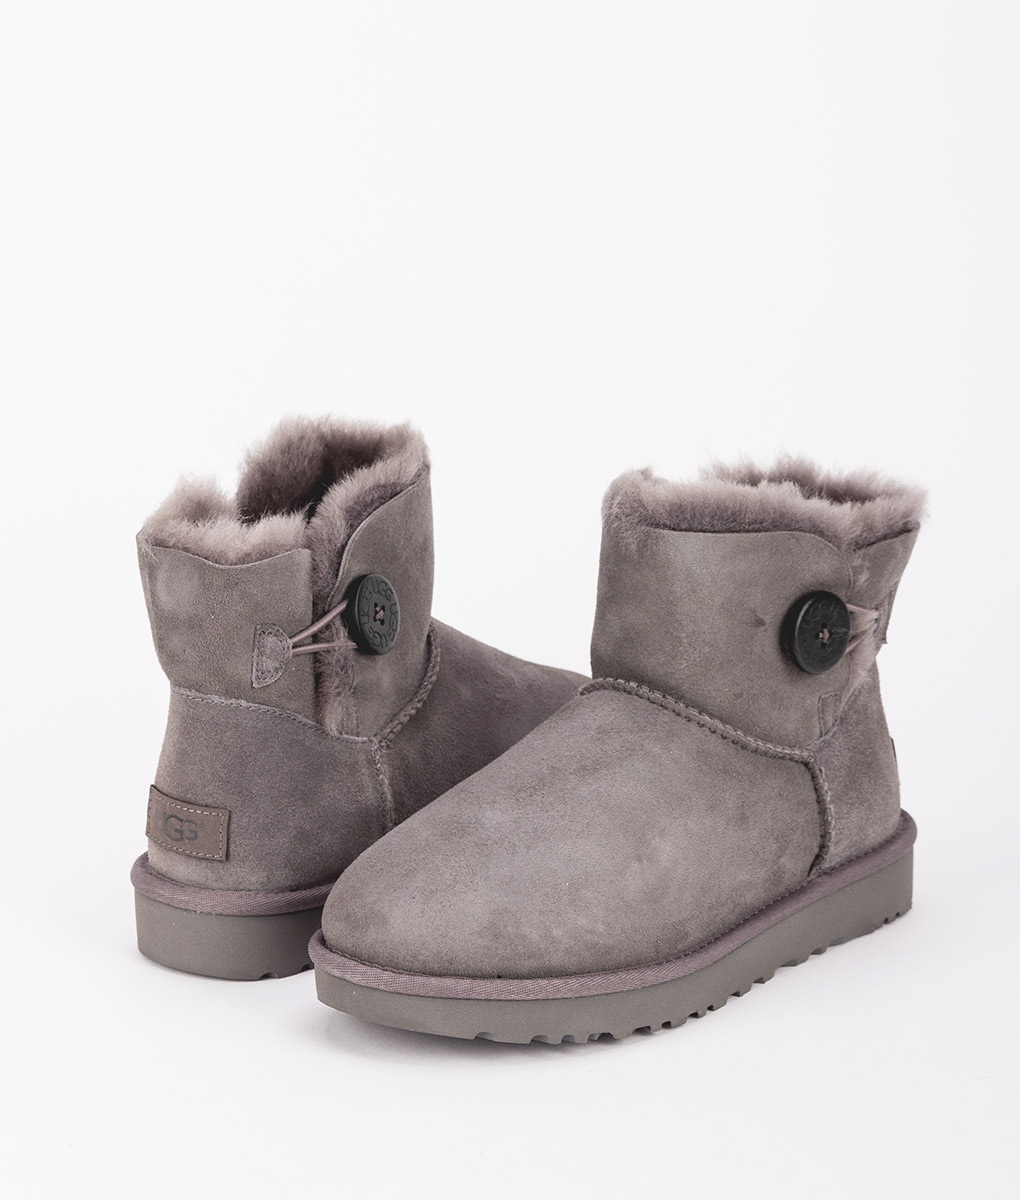 UGG Women Ankle Boots 1016422 MINI BAILEY BUTTON II, Grey 1